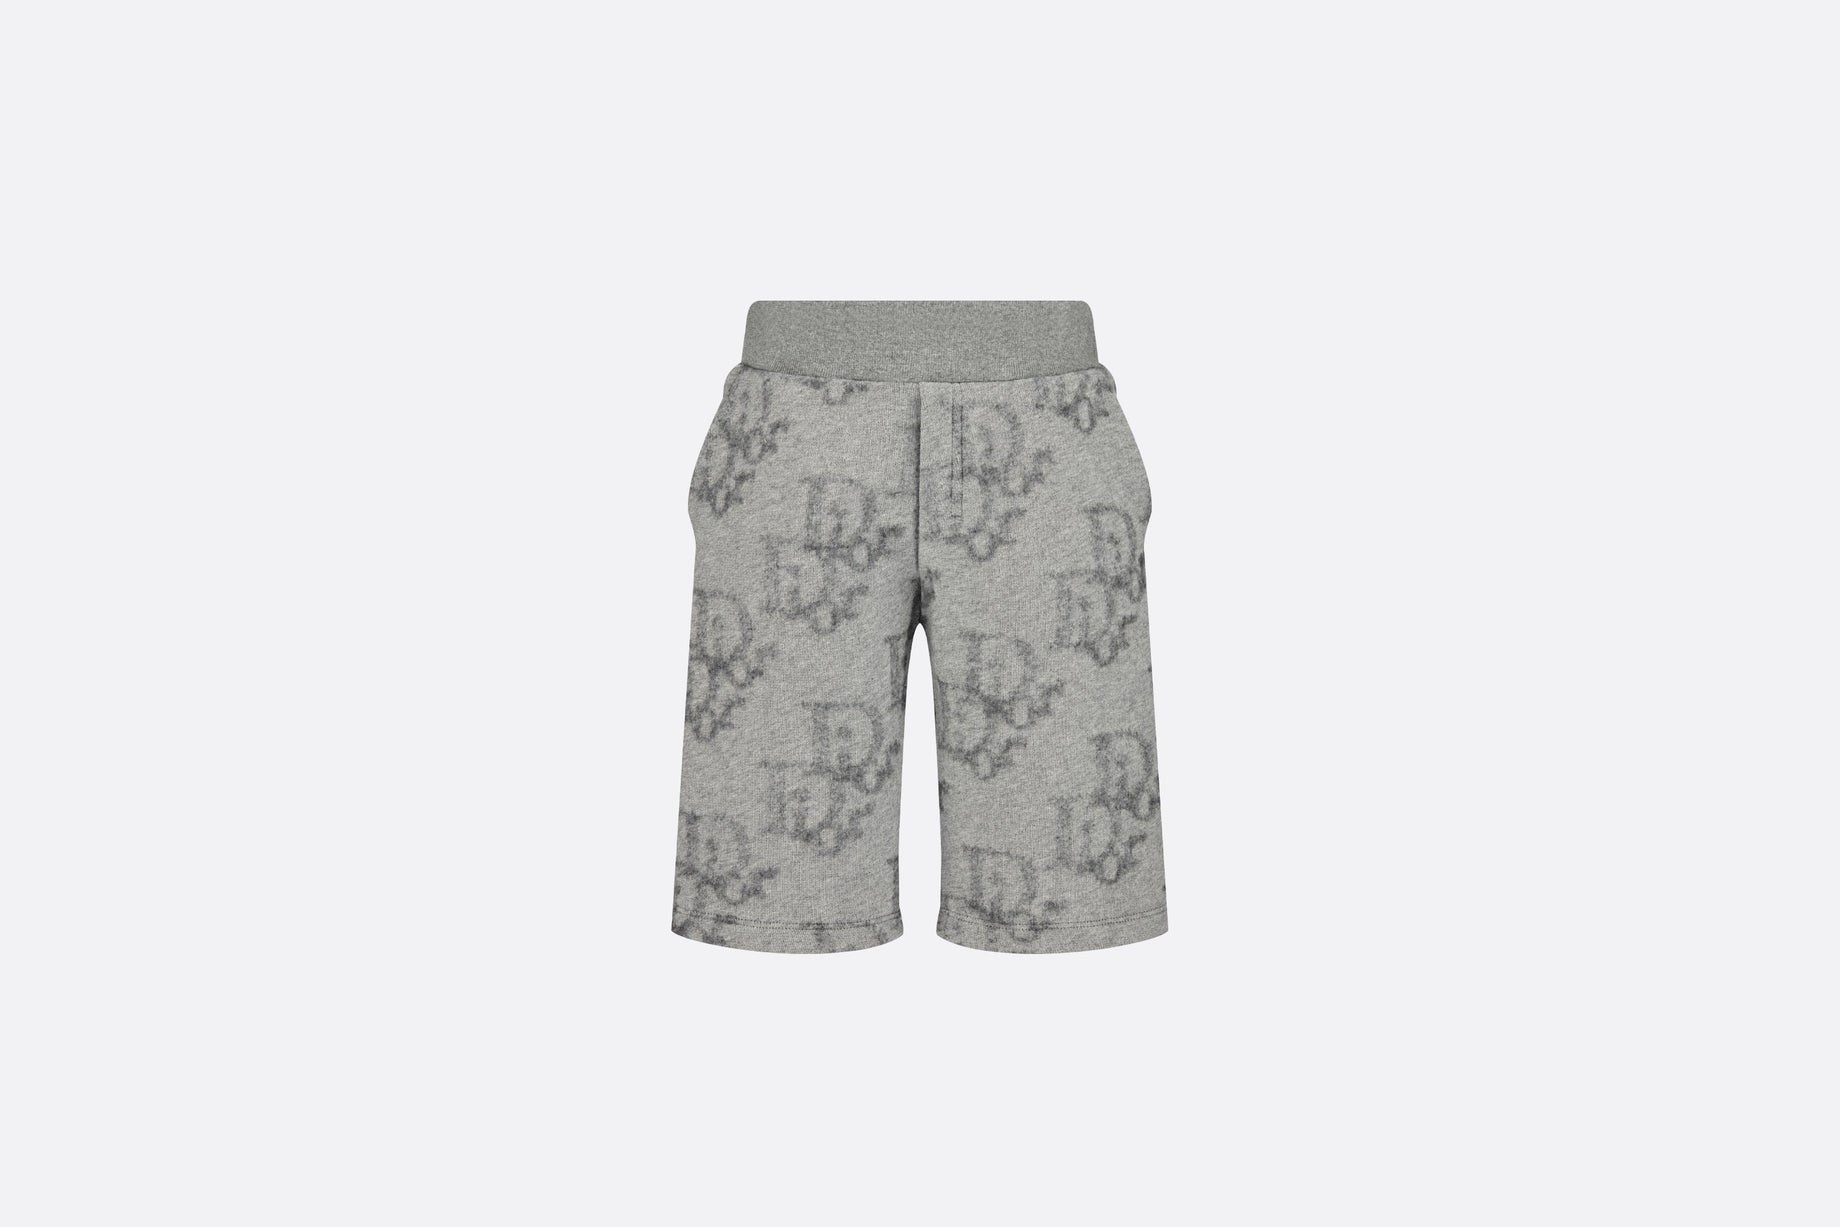 Shorts • Heather Gray Needle-Punched Cotton Fleece